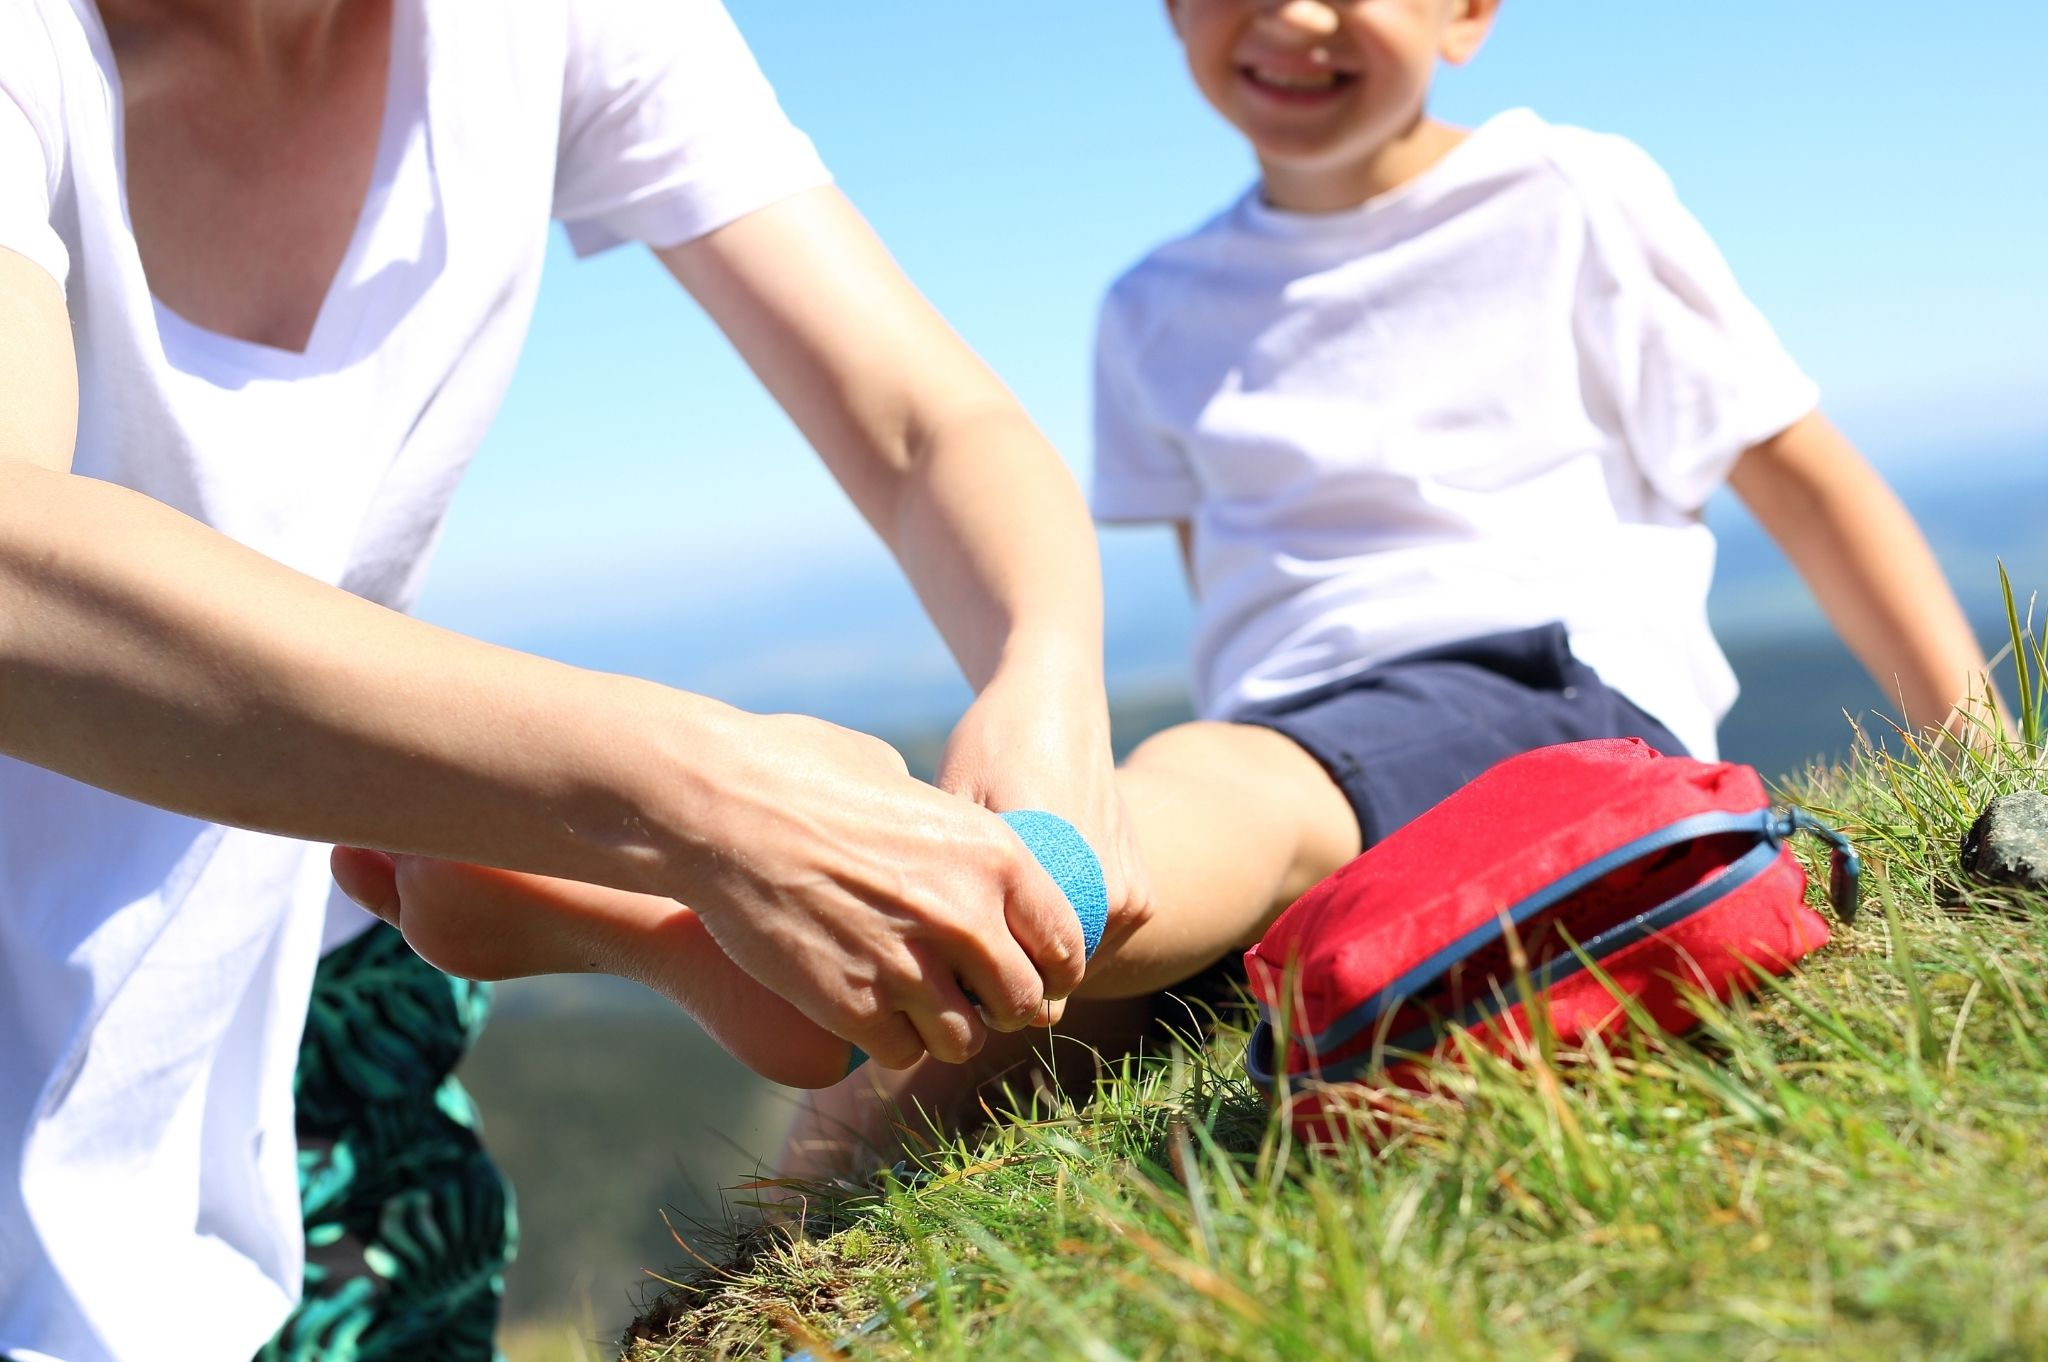 Image of a woman bandaging a child's foot